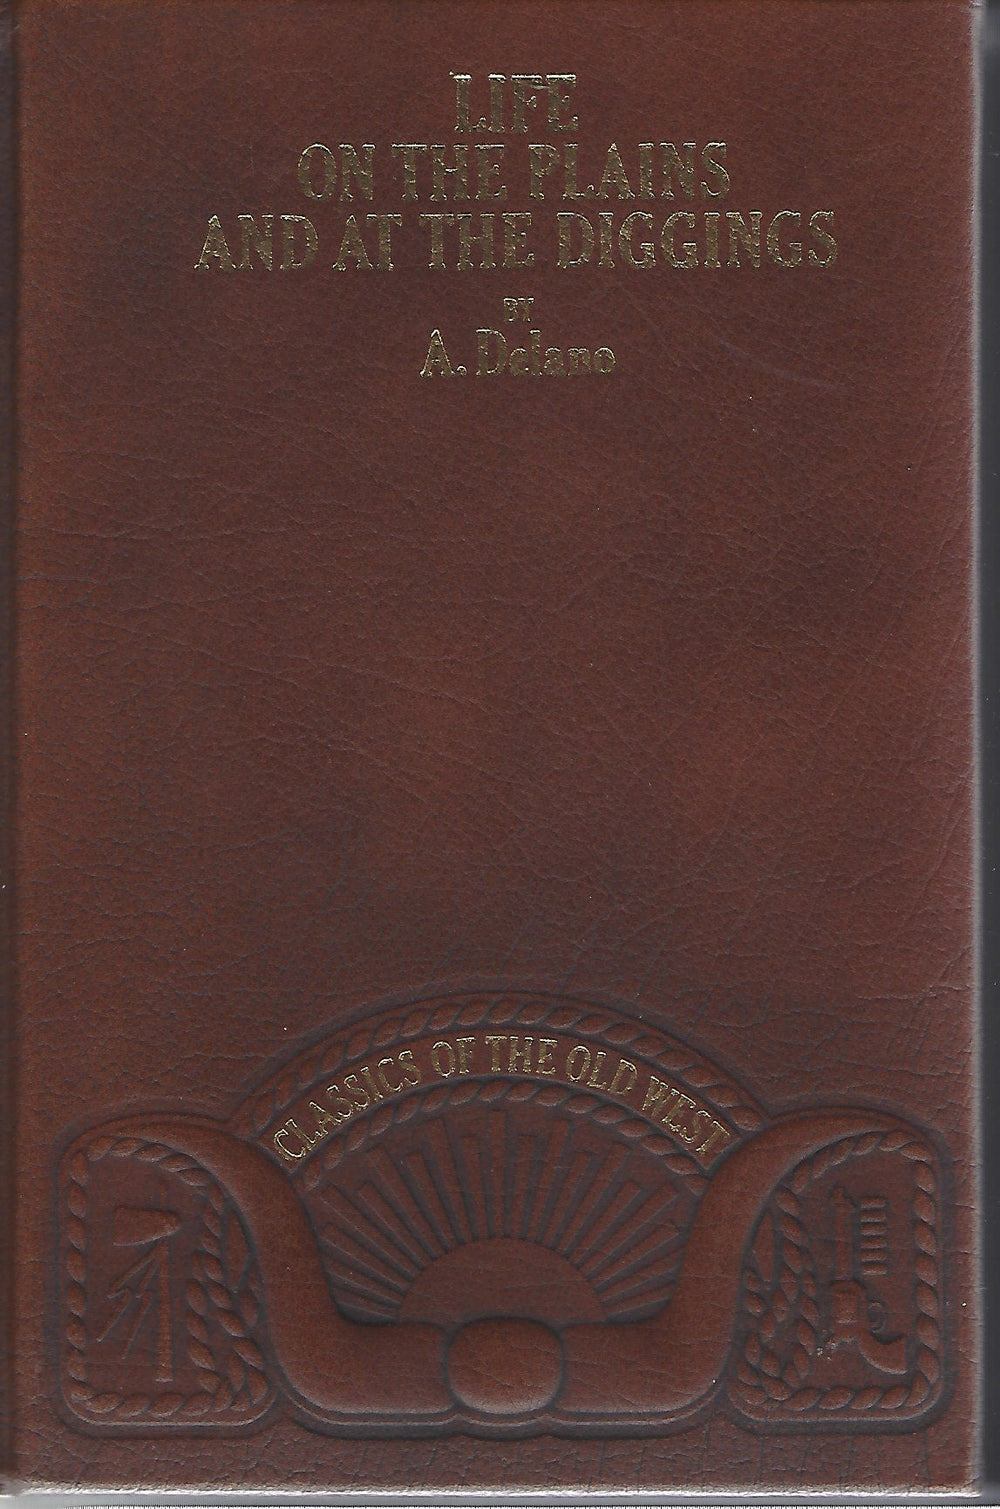 TIME-LIFE: Classics of the Old West-Life On The Plains And At The Diggings By A Delano (Leather)